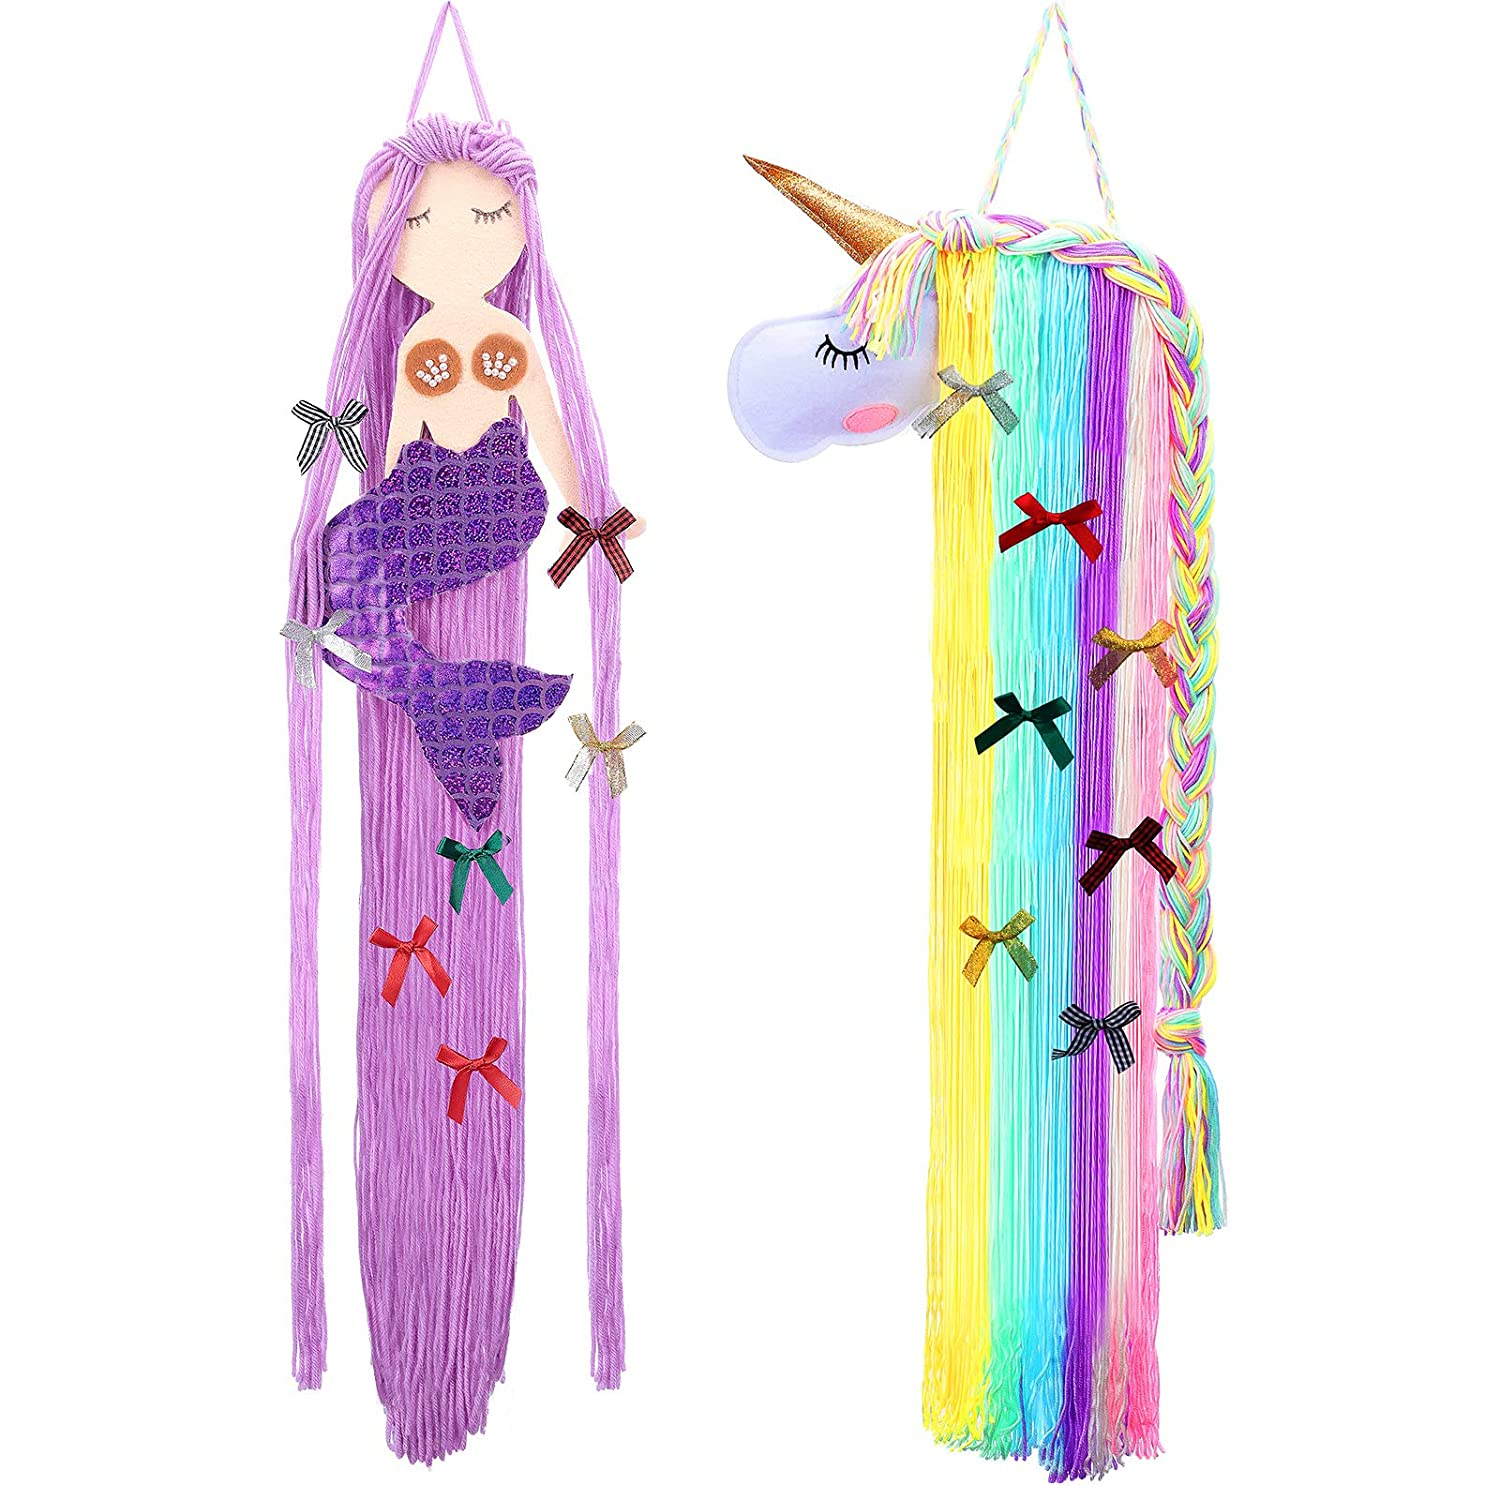 2 Pieces Mermaid Hair Bow Holder Unicorn Clips Holder Unicorn Clip Headband Organizer Clips Storage Organizer Bow Hanger Mermaid Unicorn Home Decoration for Girls Room Theme Party